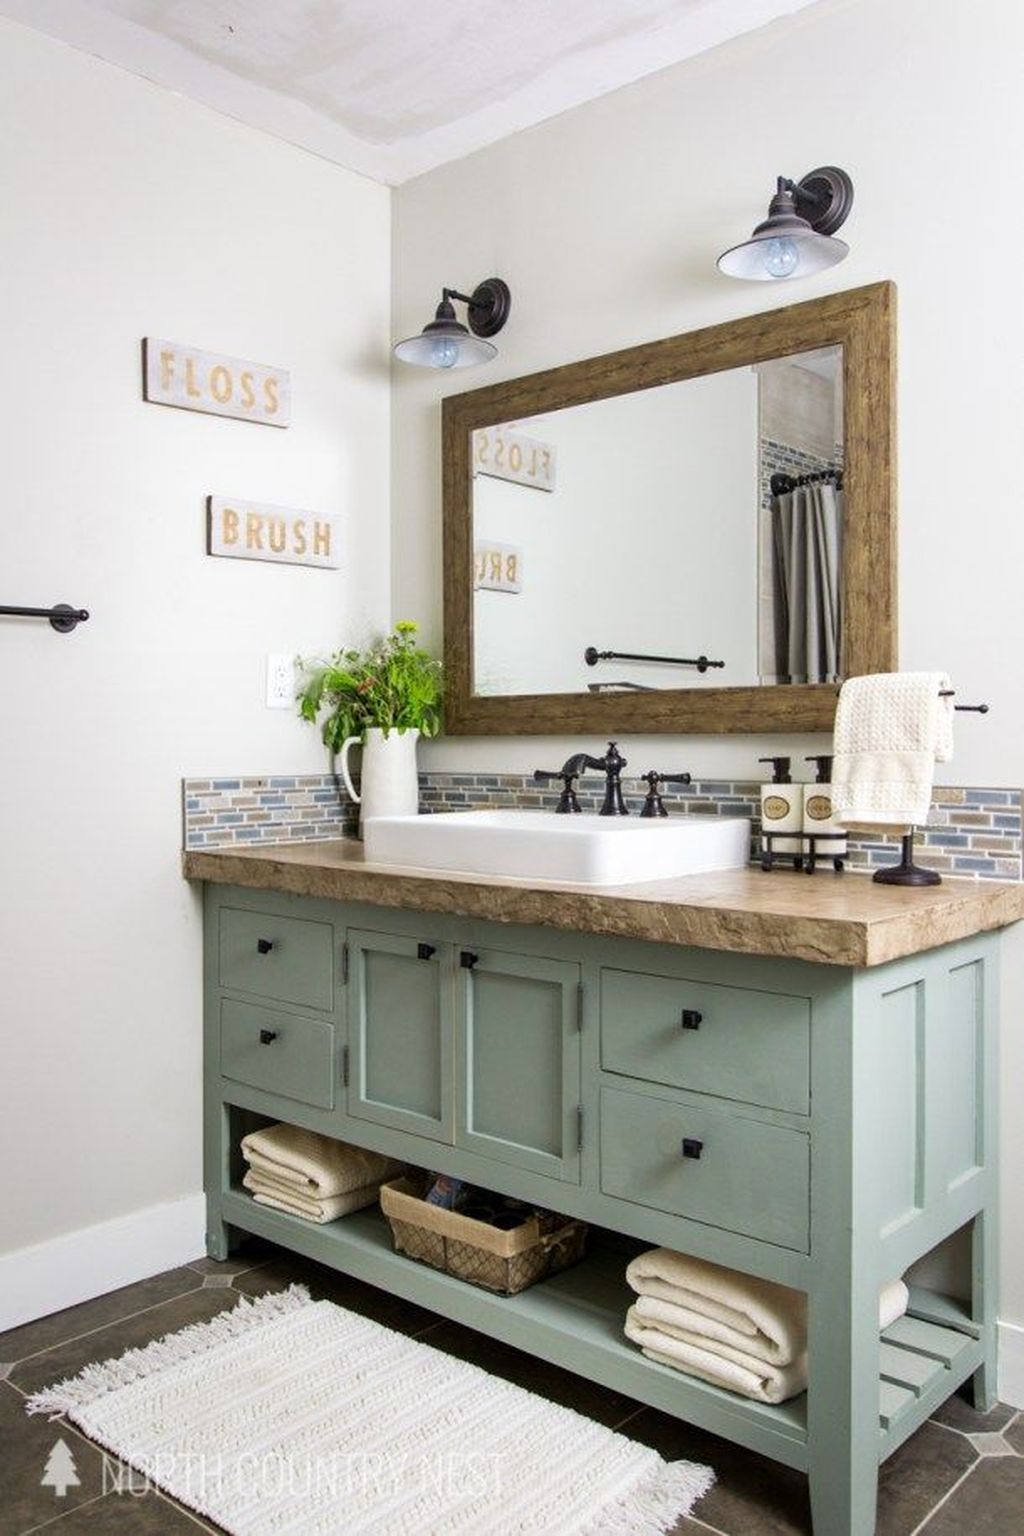 Classy Bathroom Décor Ideas42